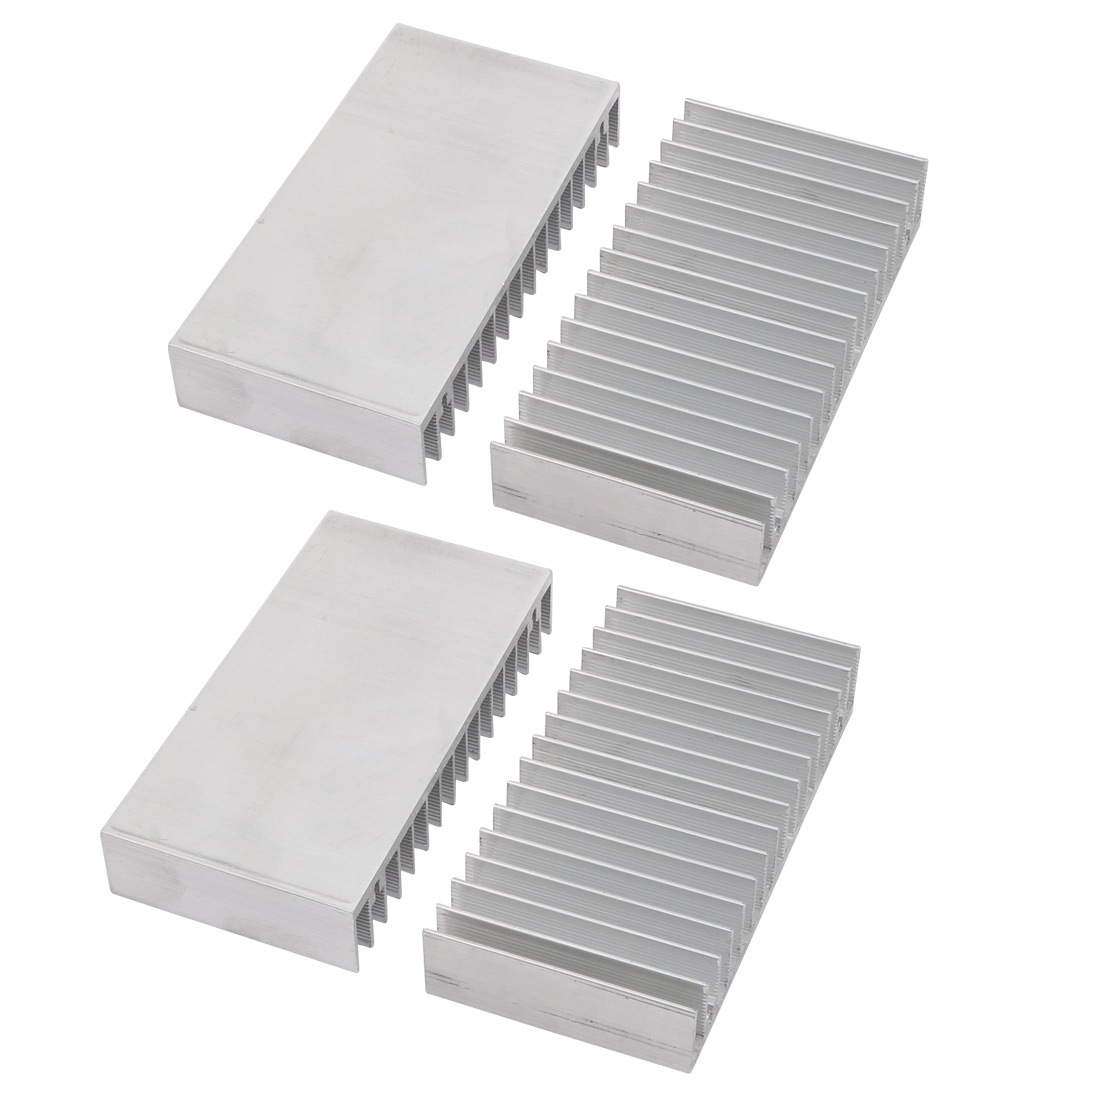 4pcs Aluminum Heat Diffuser Heatsink Cooling Fin 100mmx52mmx18mm for LED Lamp